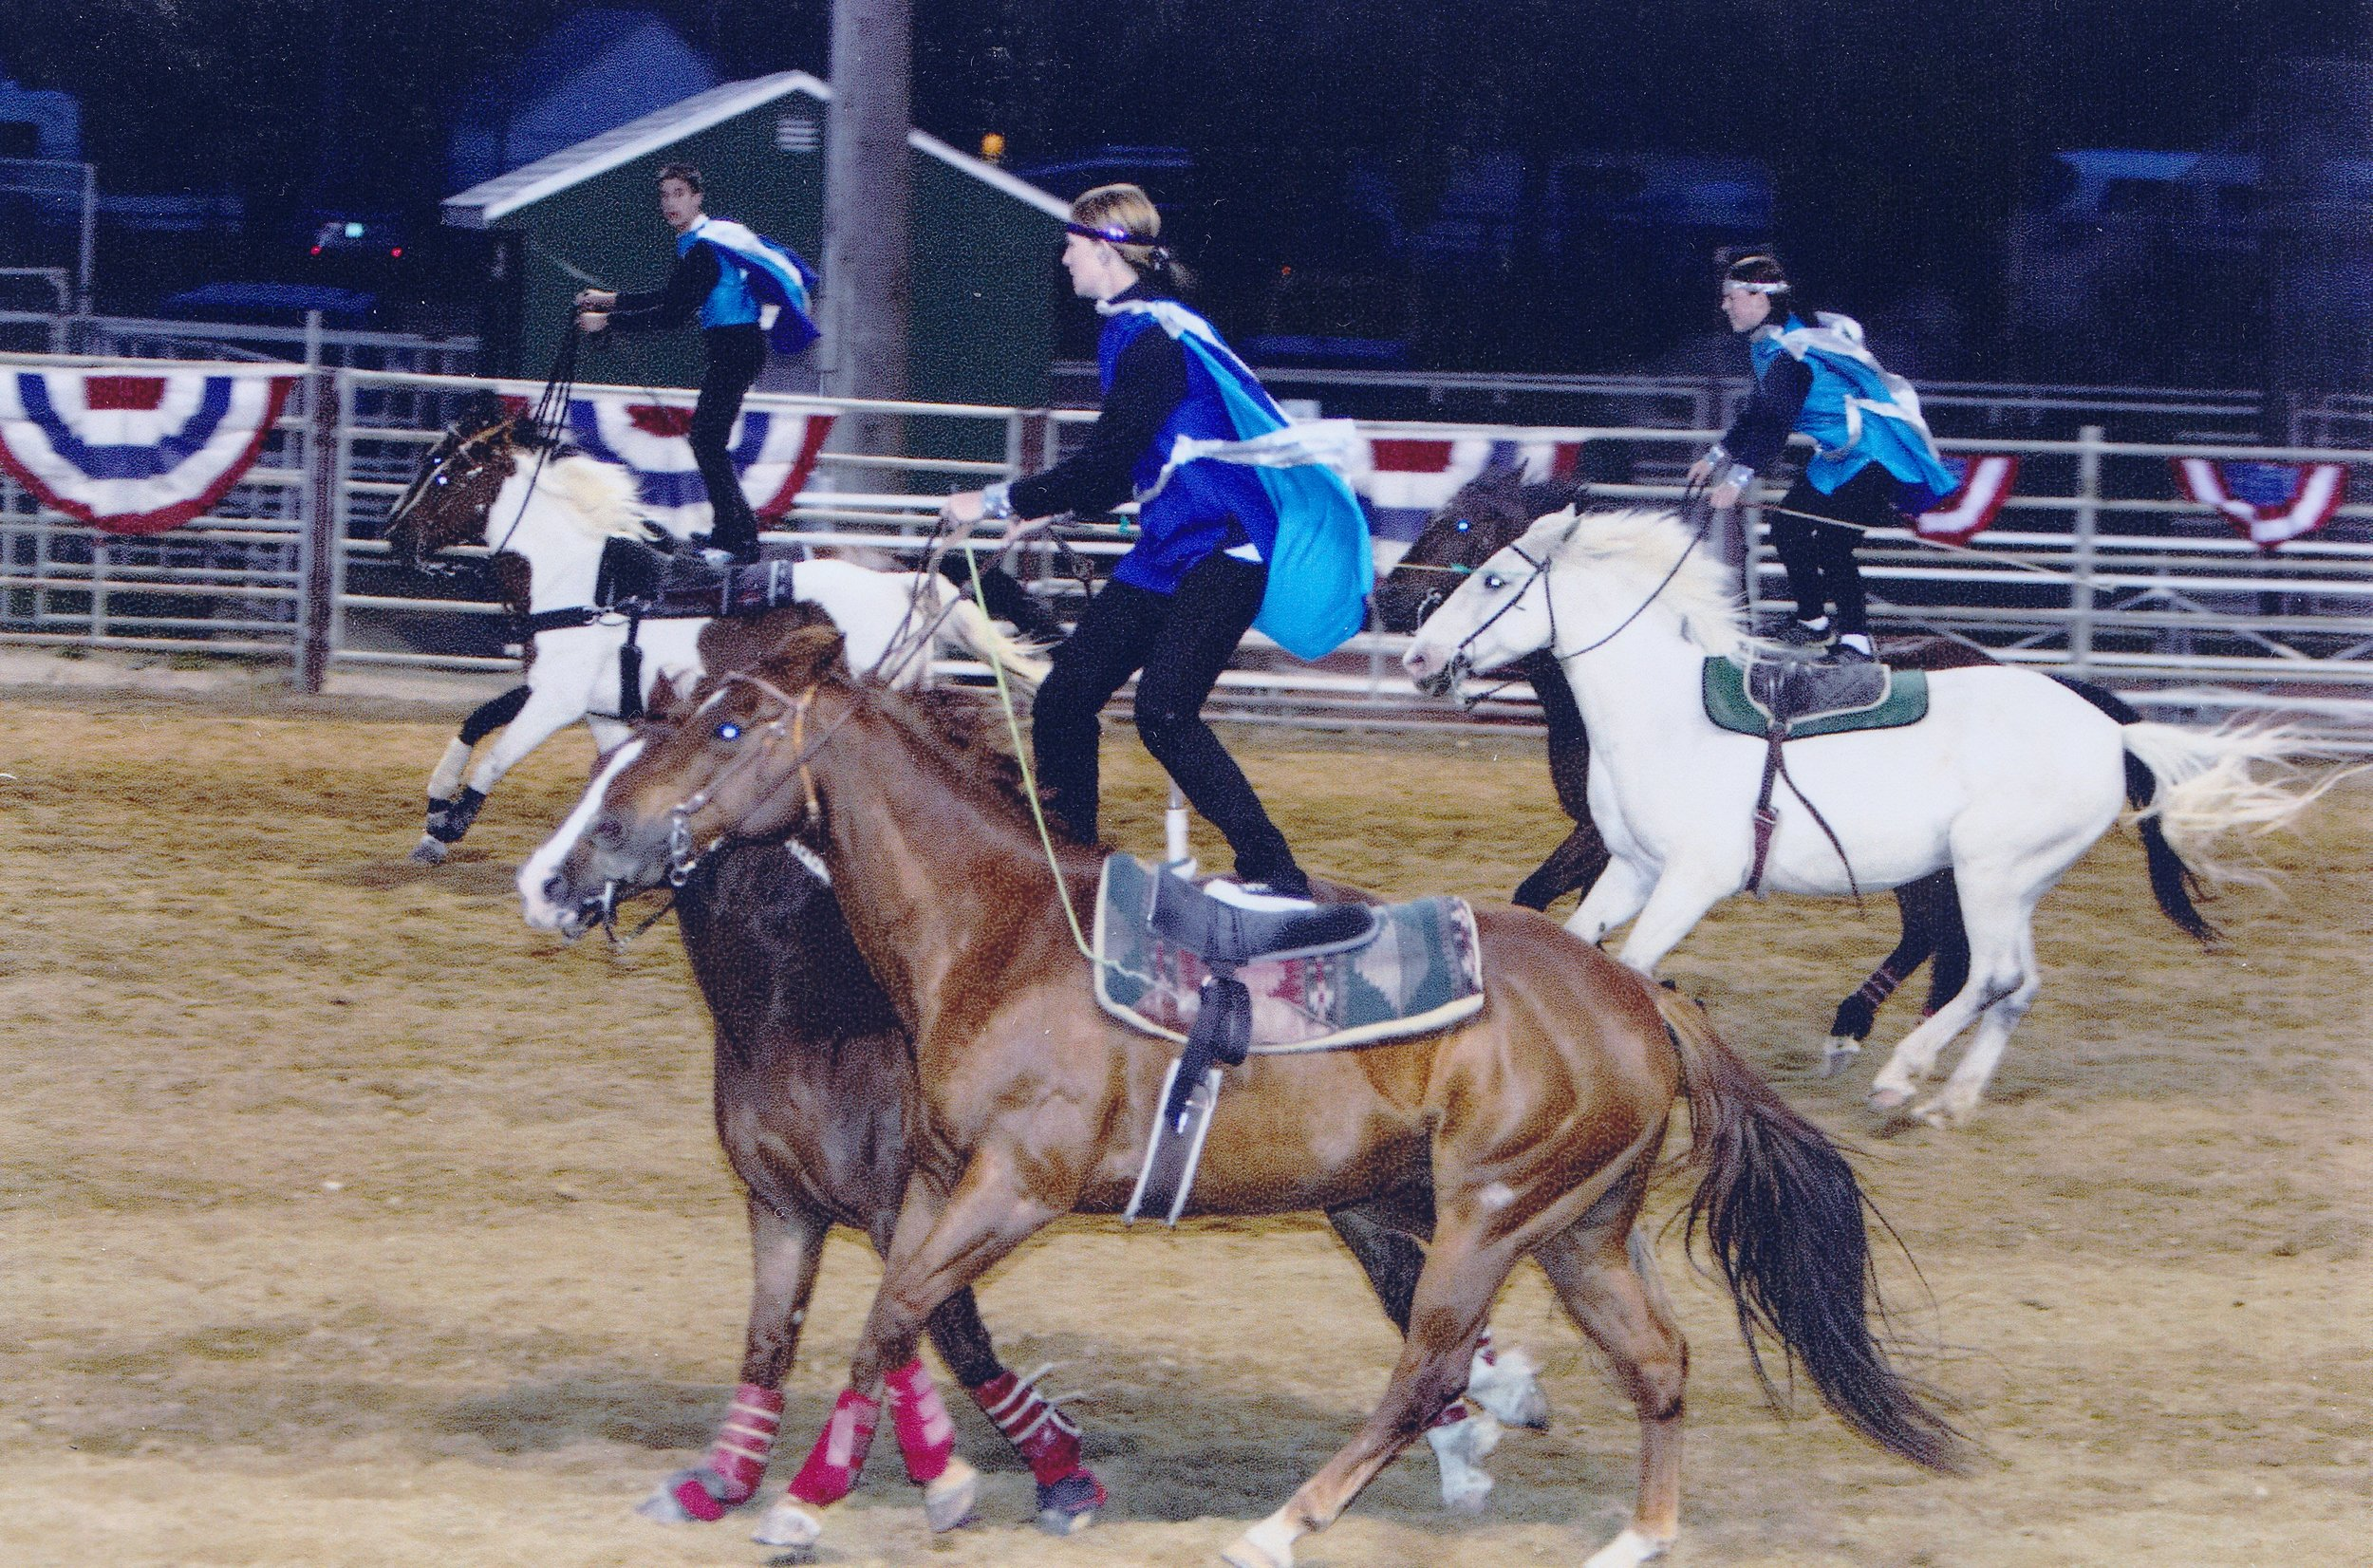 The Westernaires roman riding team deftly performs at the 2004 Sheridan, Wyoming Buffalo Bill Days extravaganza